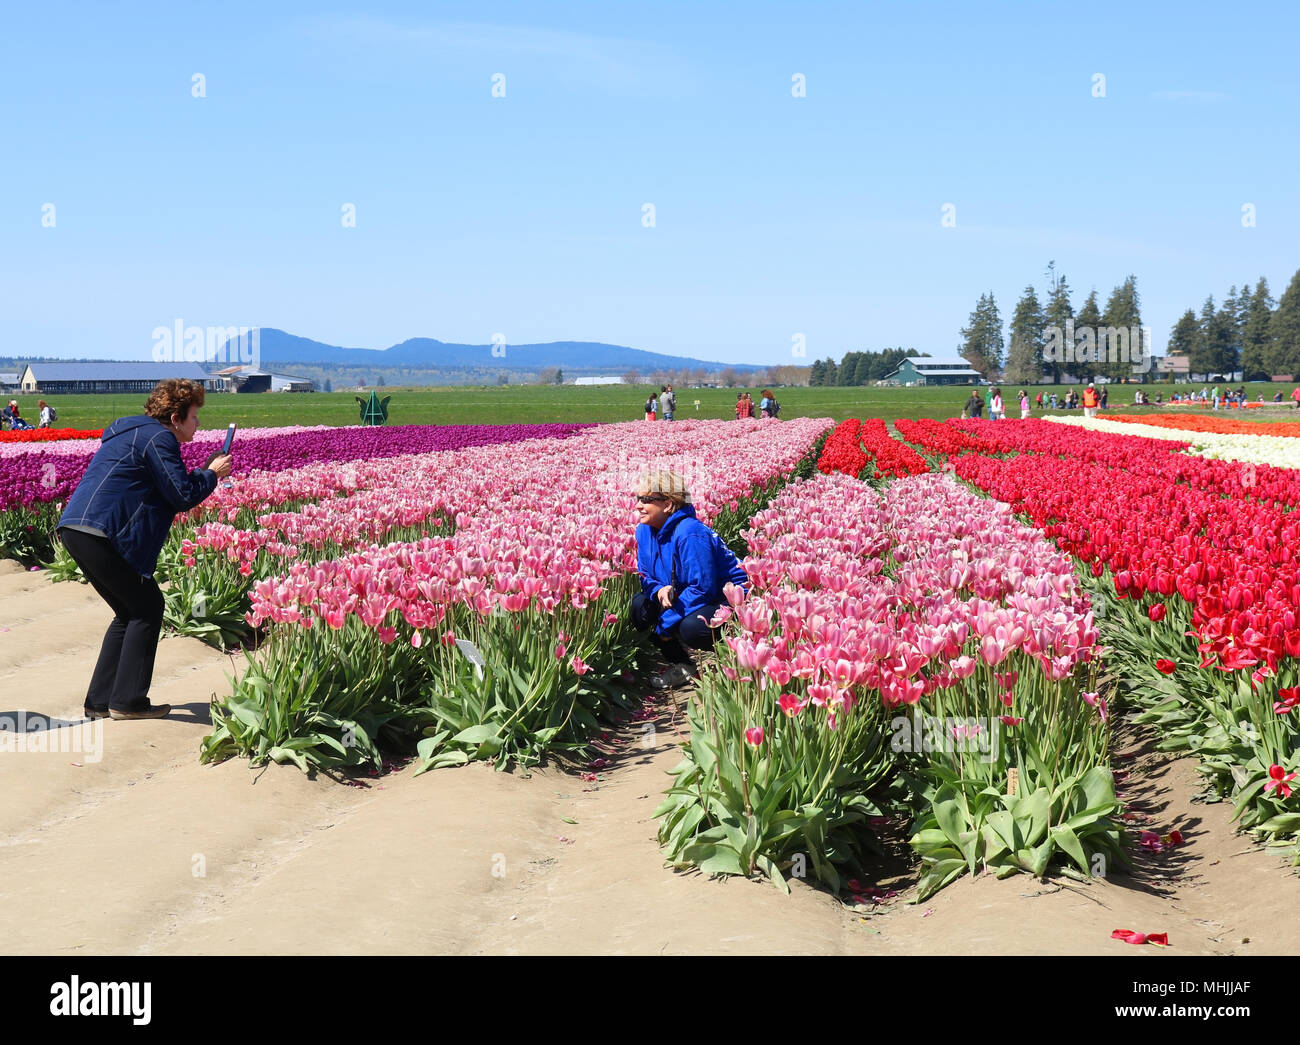 Woman posing in the field ot tulips while her friend is taking her picture at the Skagit Valley Tulip Festival in Mount Vernon, Washington, USA. Stock Photo